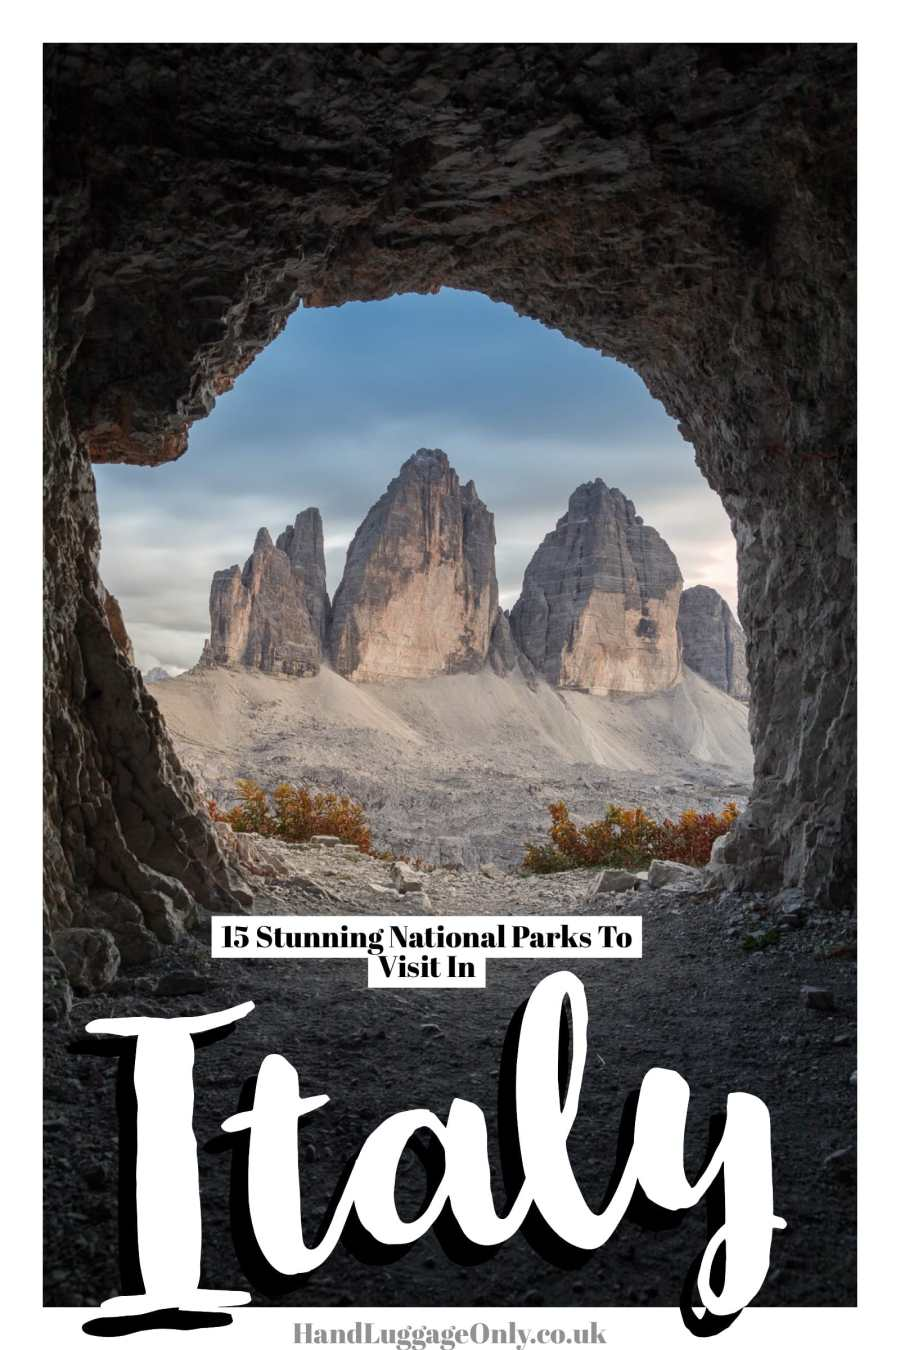 15 Stunning National Parks In Italy To Visit (19)